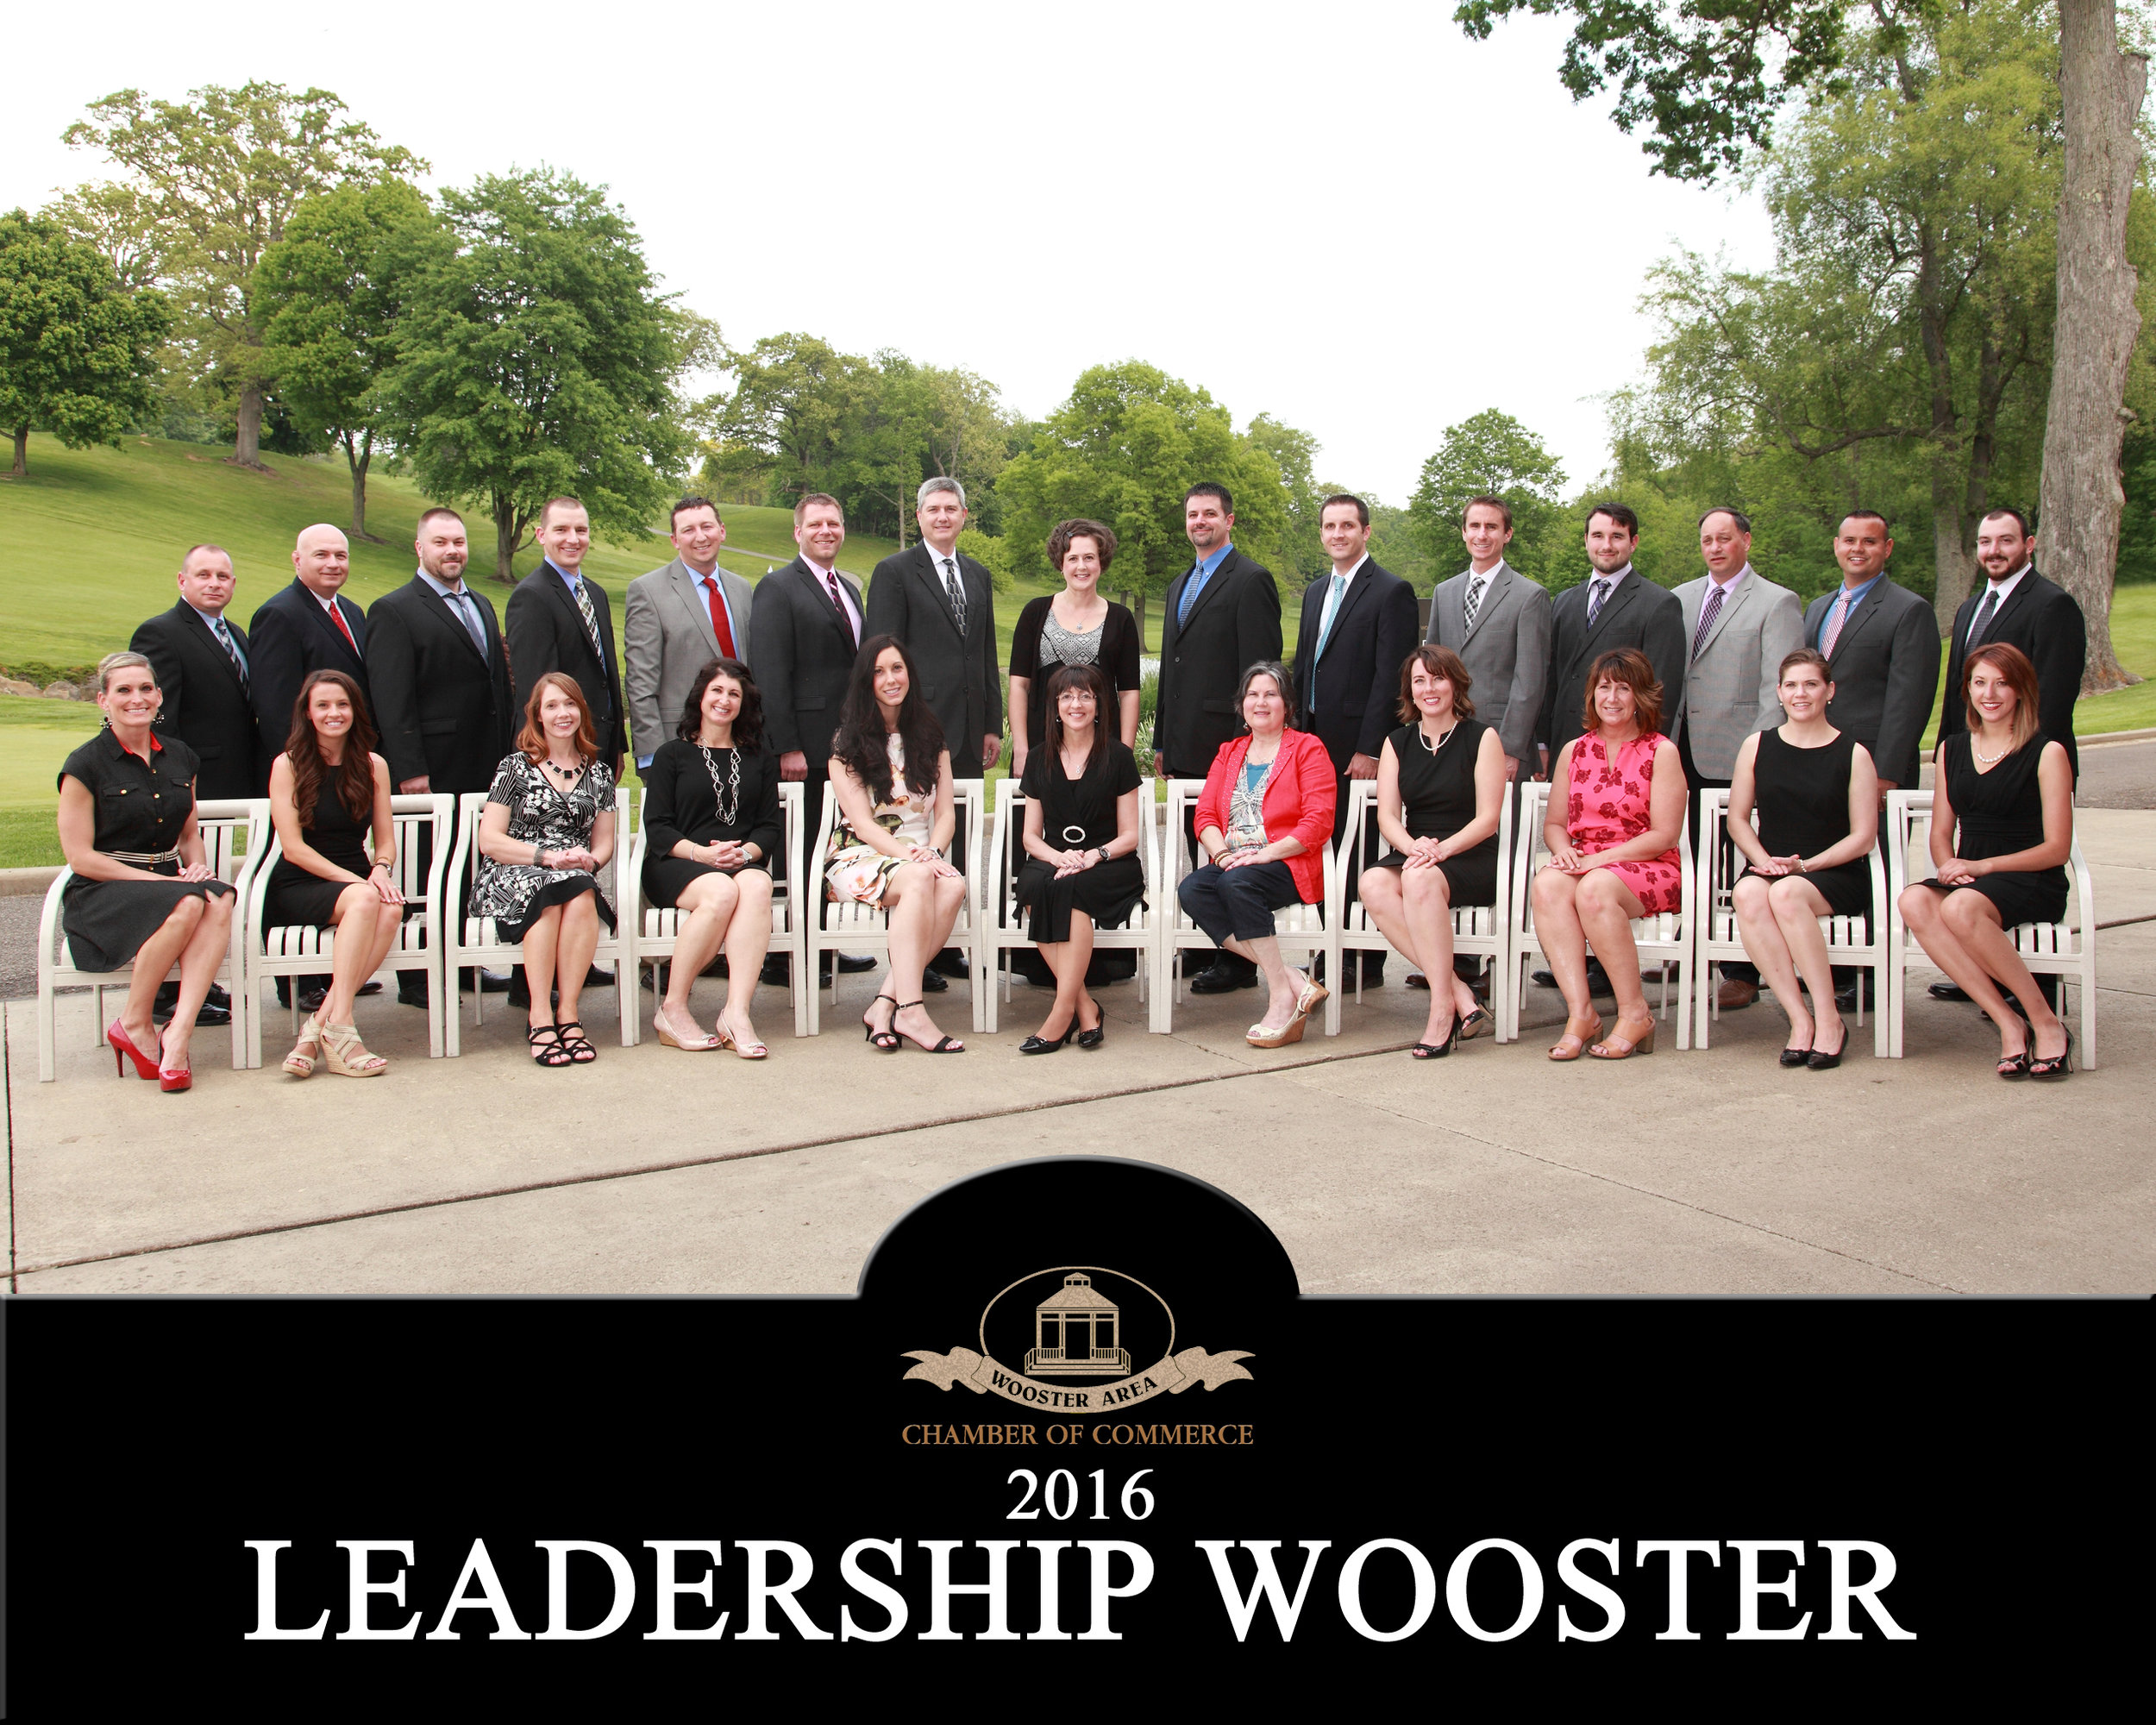 2016 Leadership Wooster.jpg